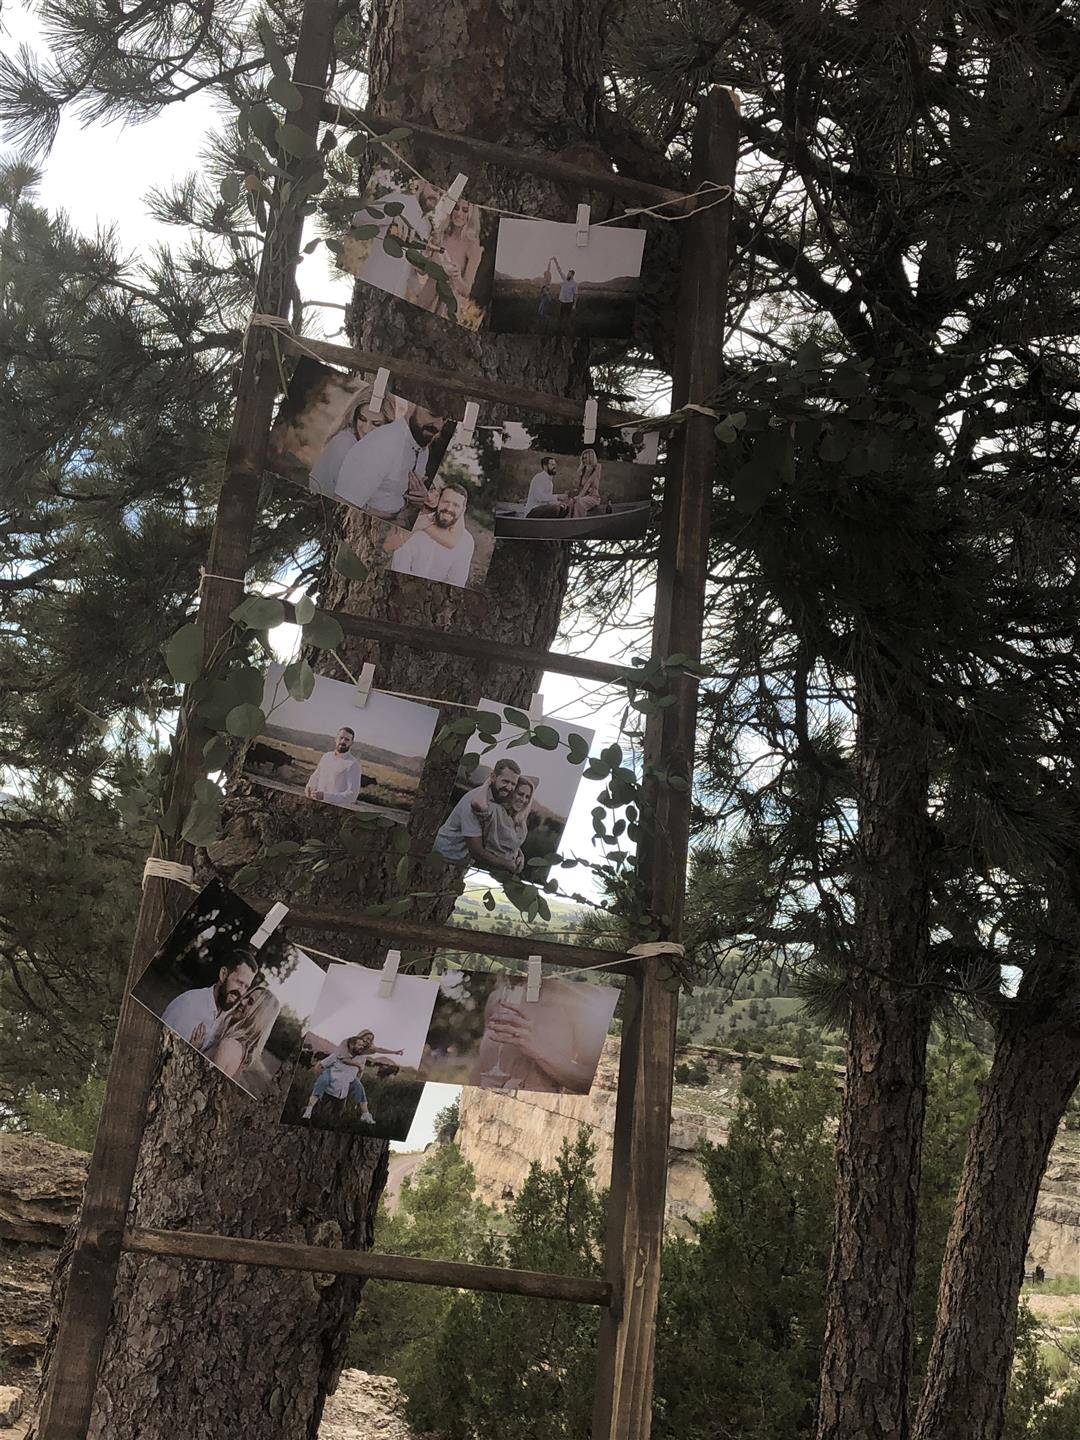 lake side wedding - family photos displayed on ladder leaning against tree